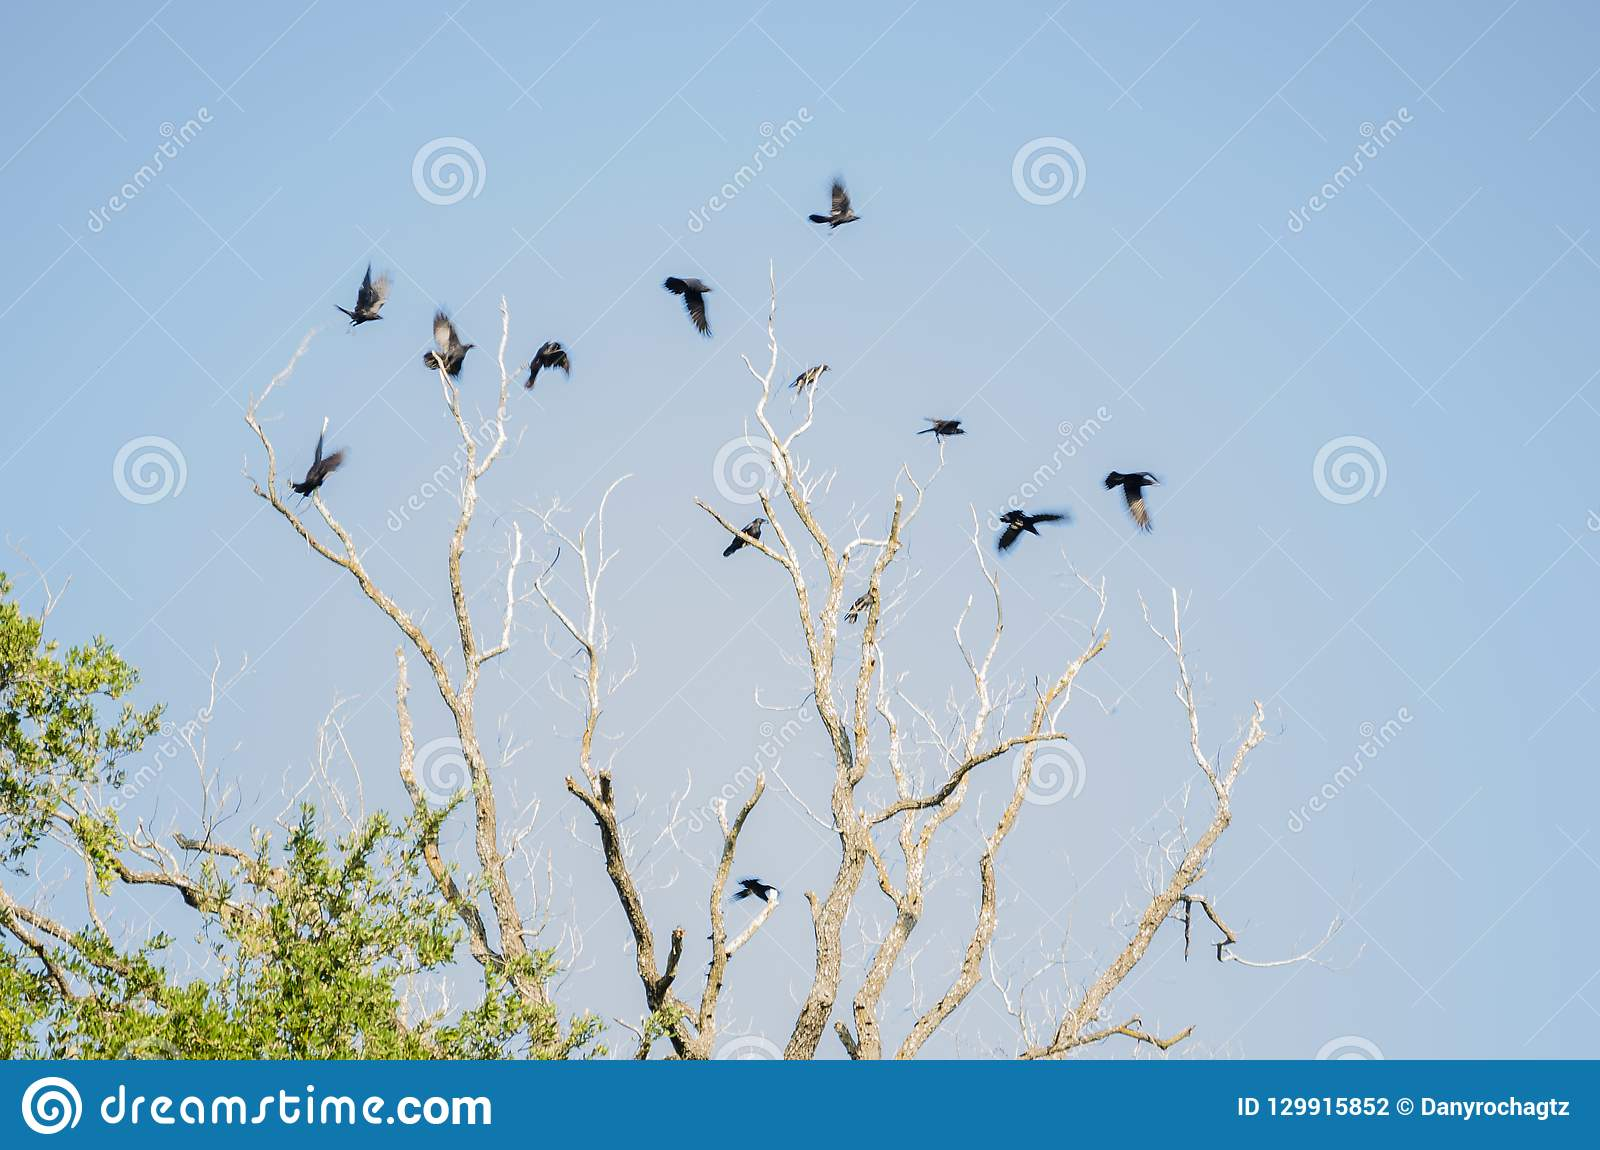 Group of many crows flying over a large dry tree, background of a clear blue sky.